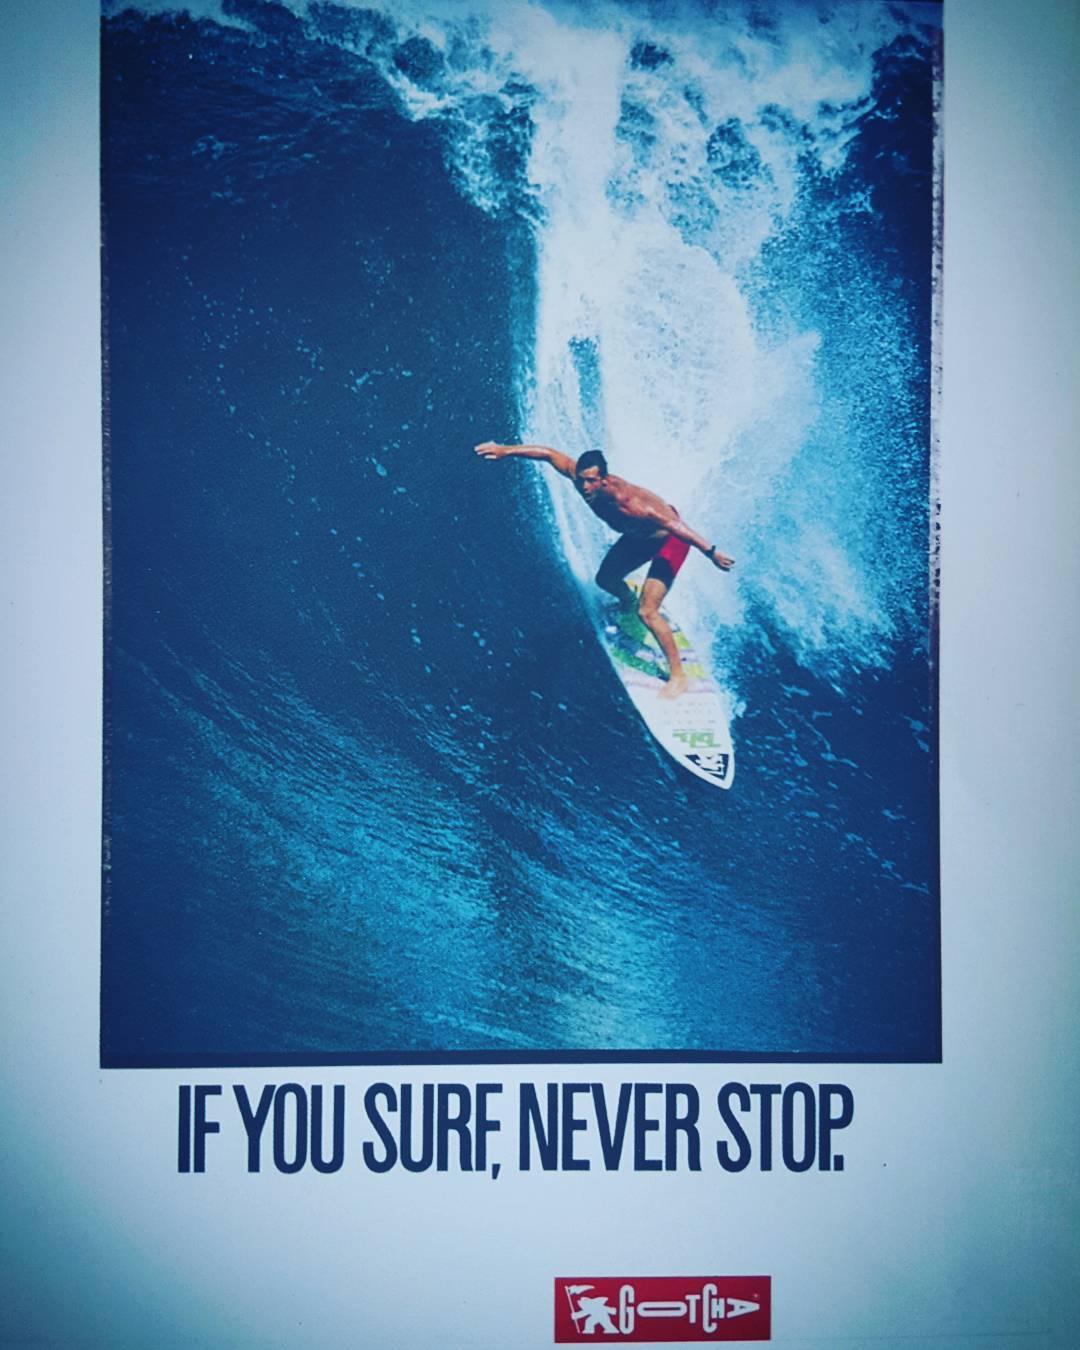 IF YOU SURF, NEVER STOP #gotcha